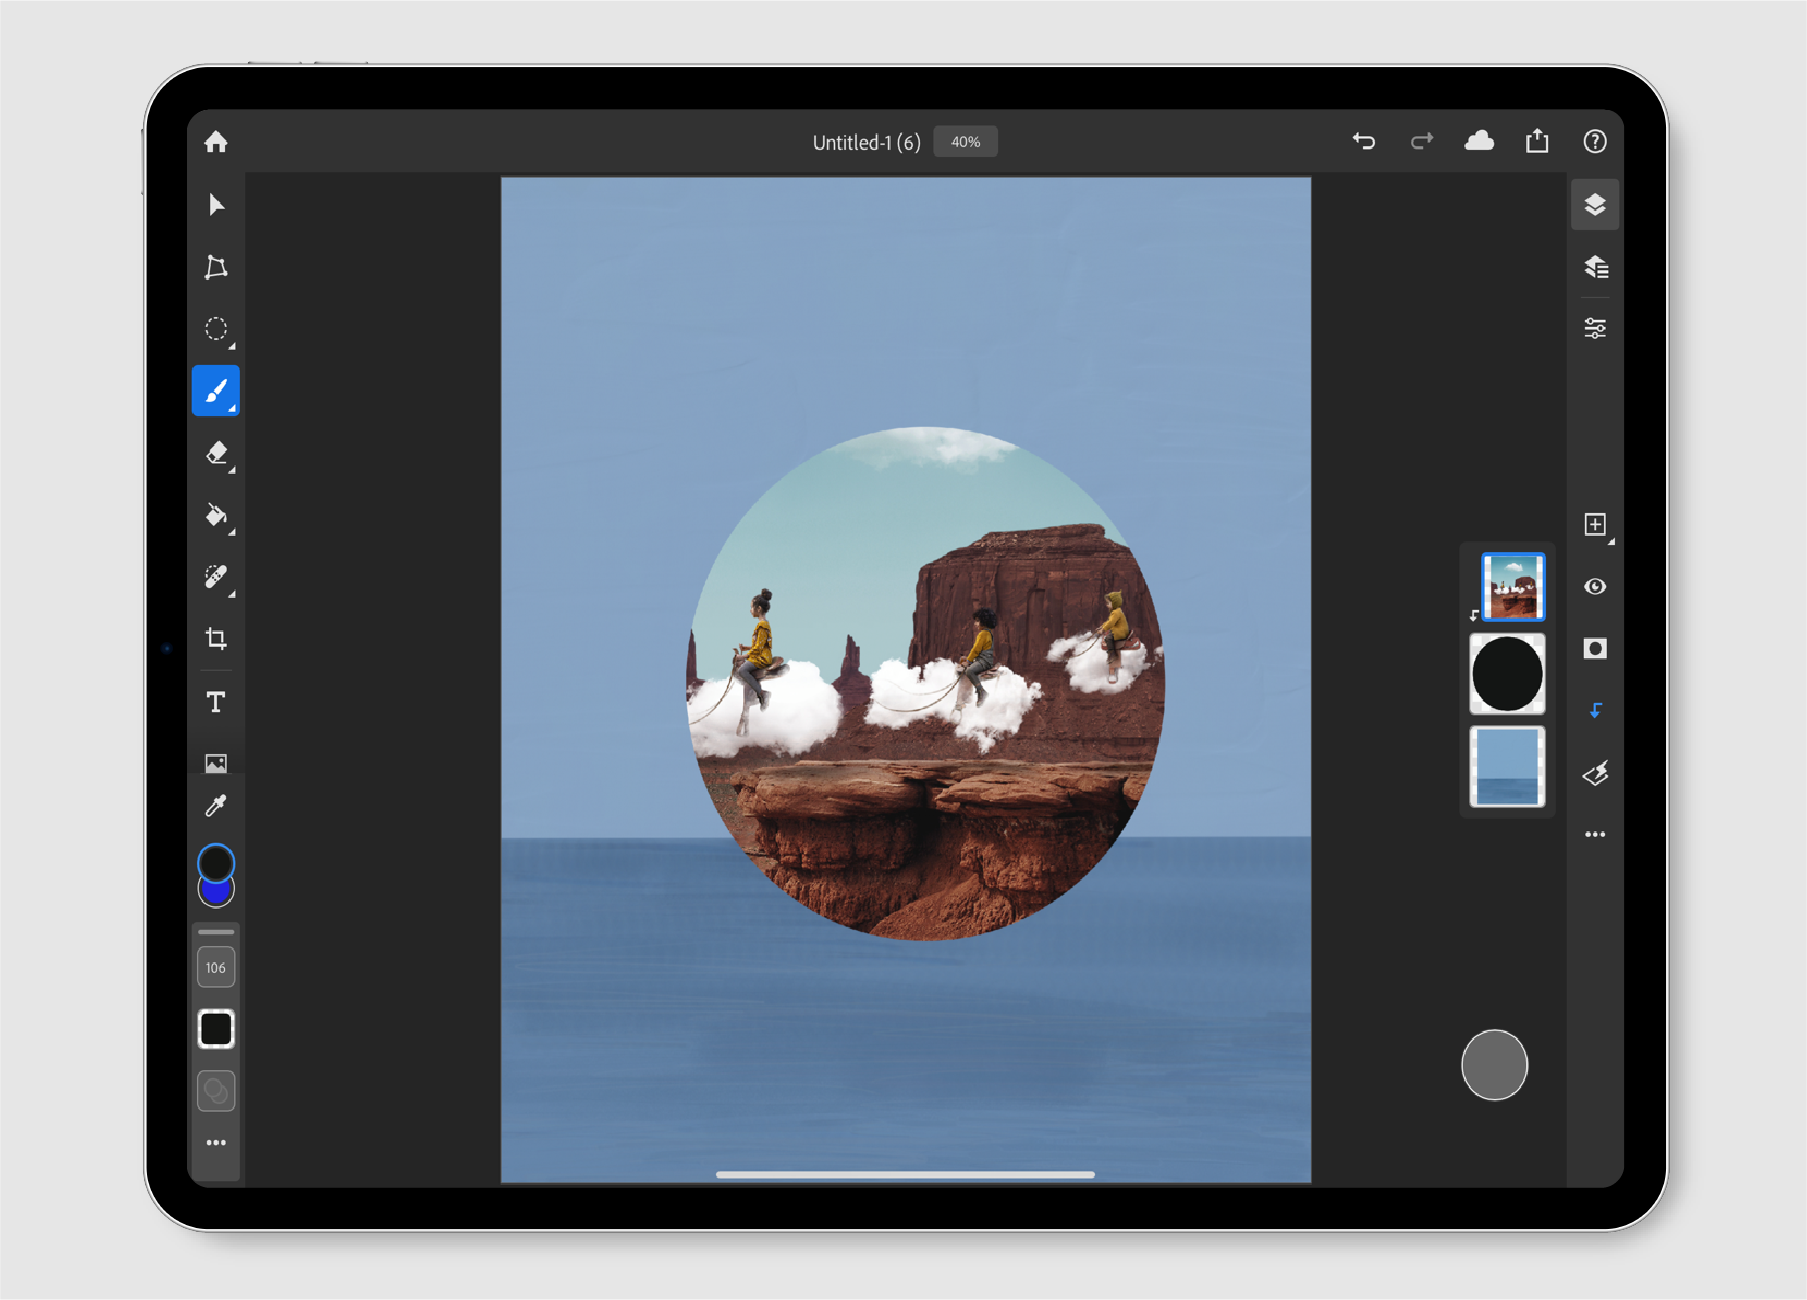 Add a clipping mask in Photoshop on the iPad